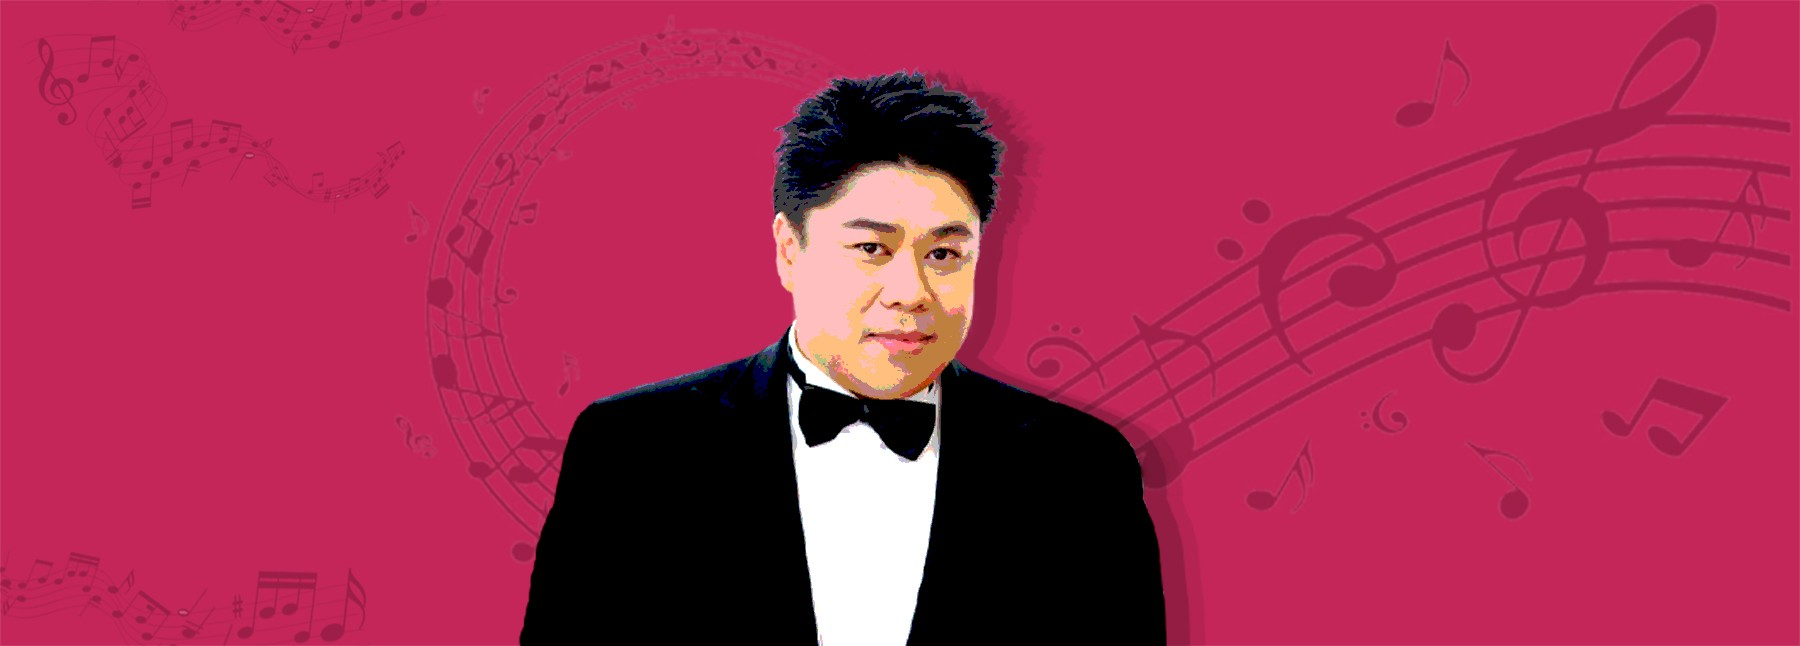 valentines-concert-and-gala-dinner-2020